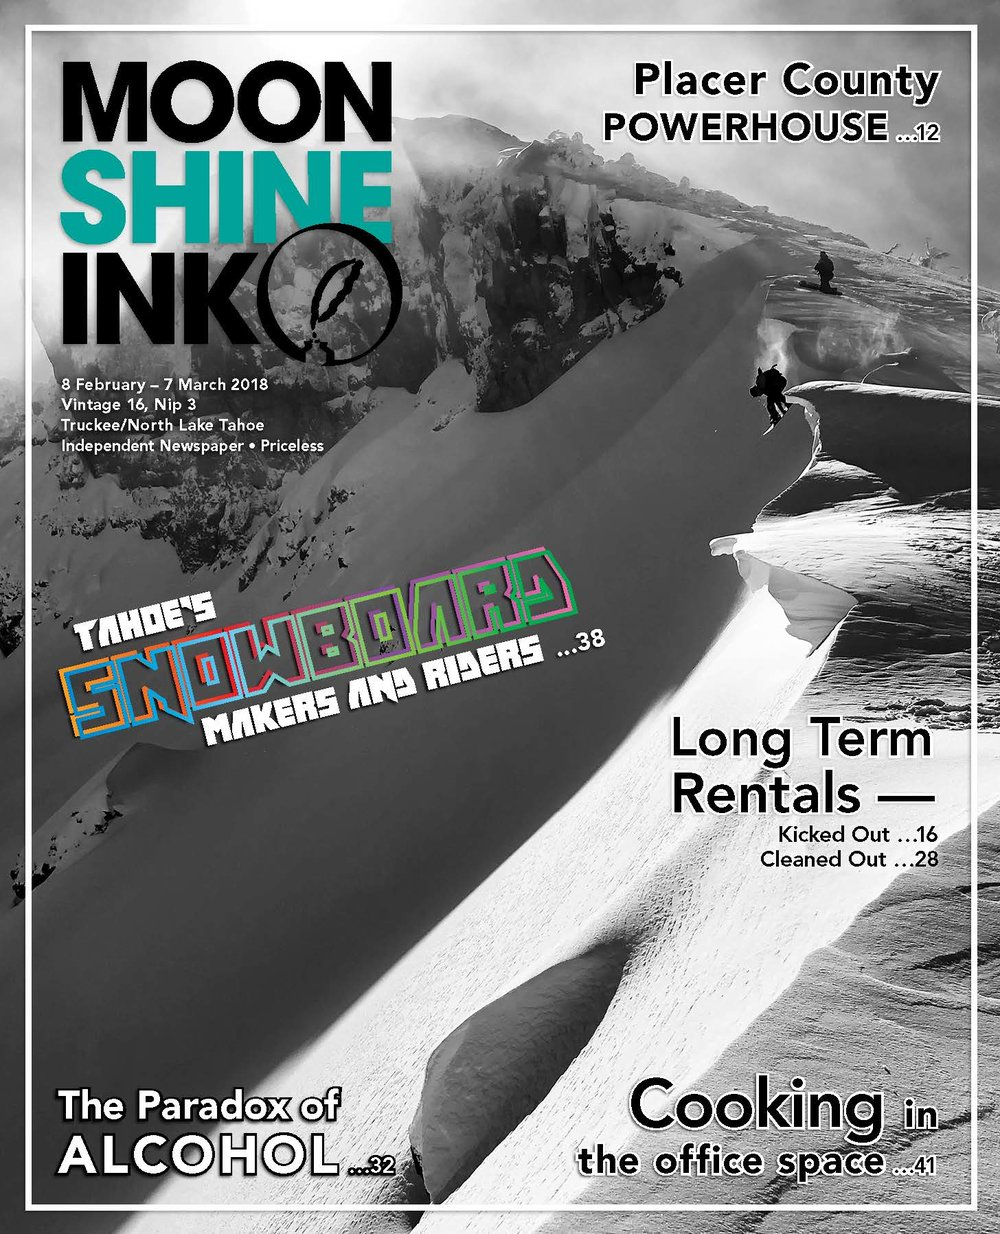 Moonshine Ink - February 08-March 07 2018 Issue